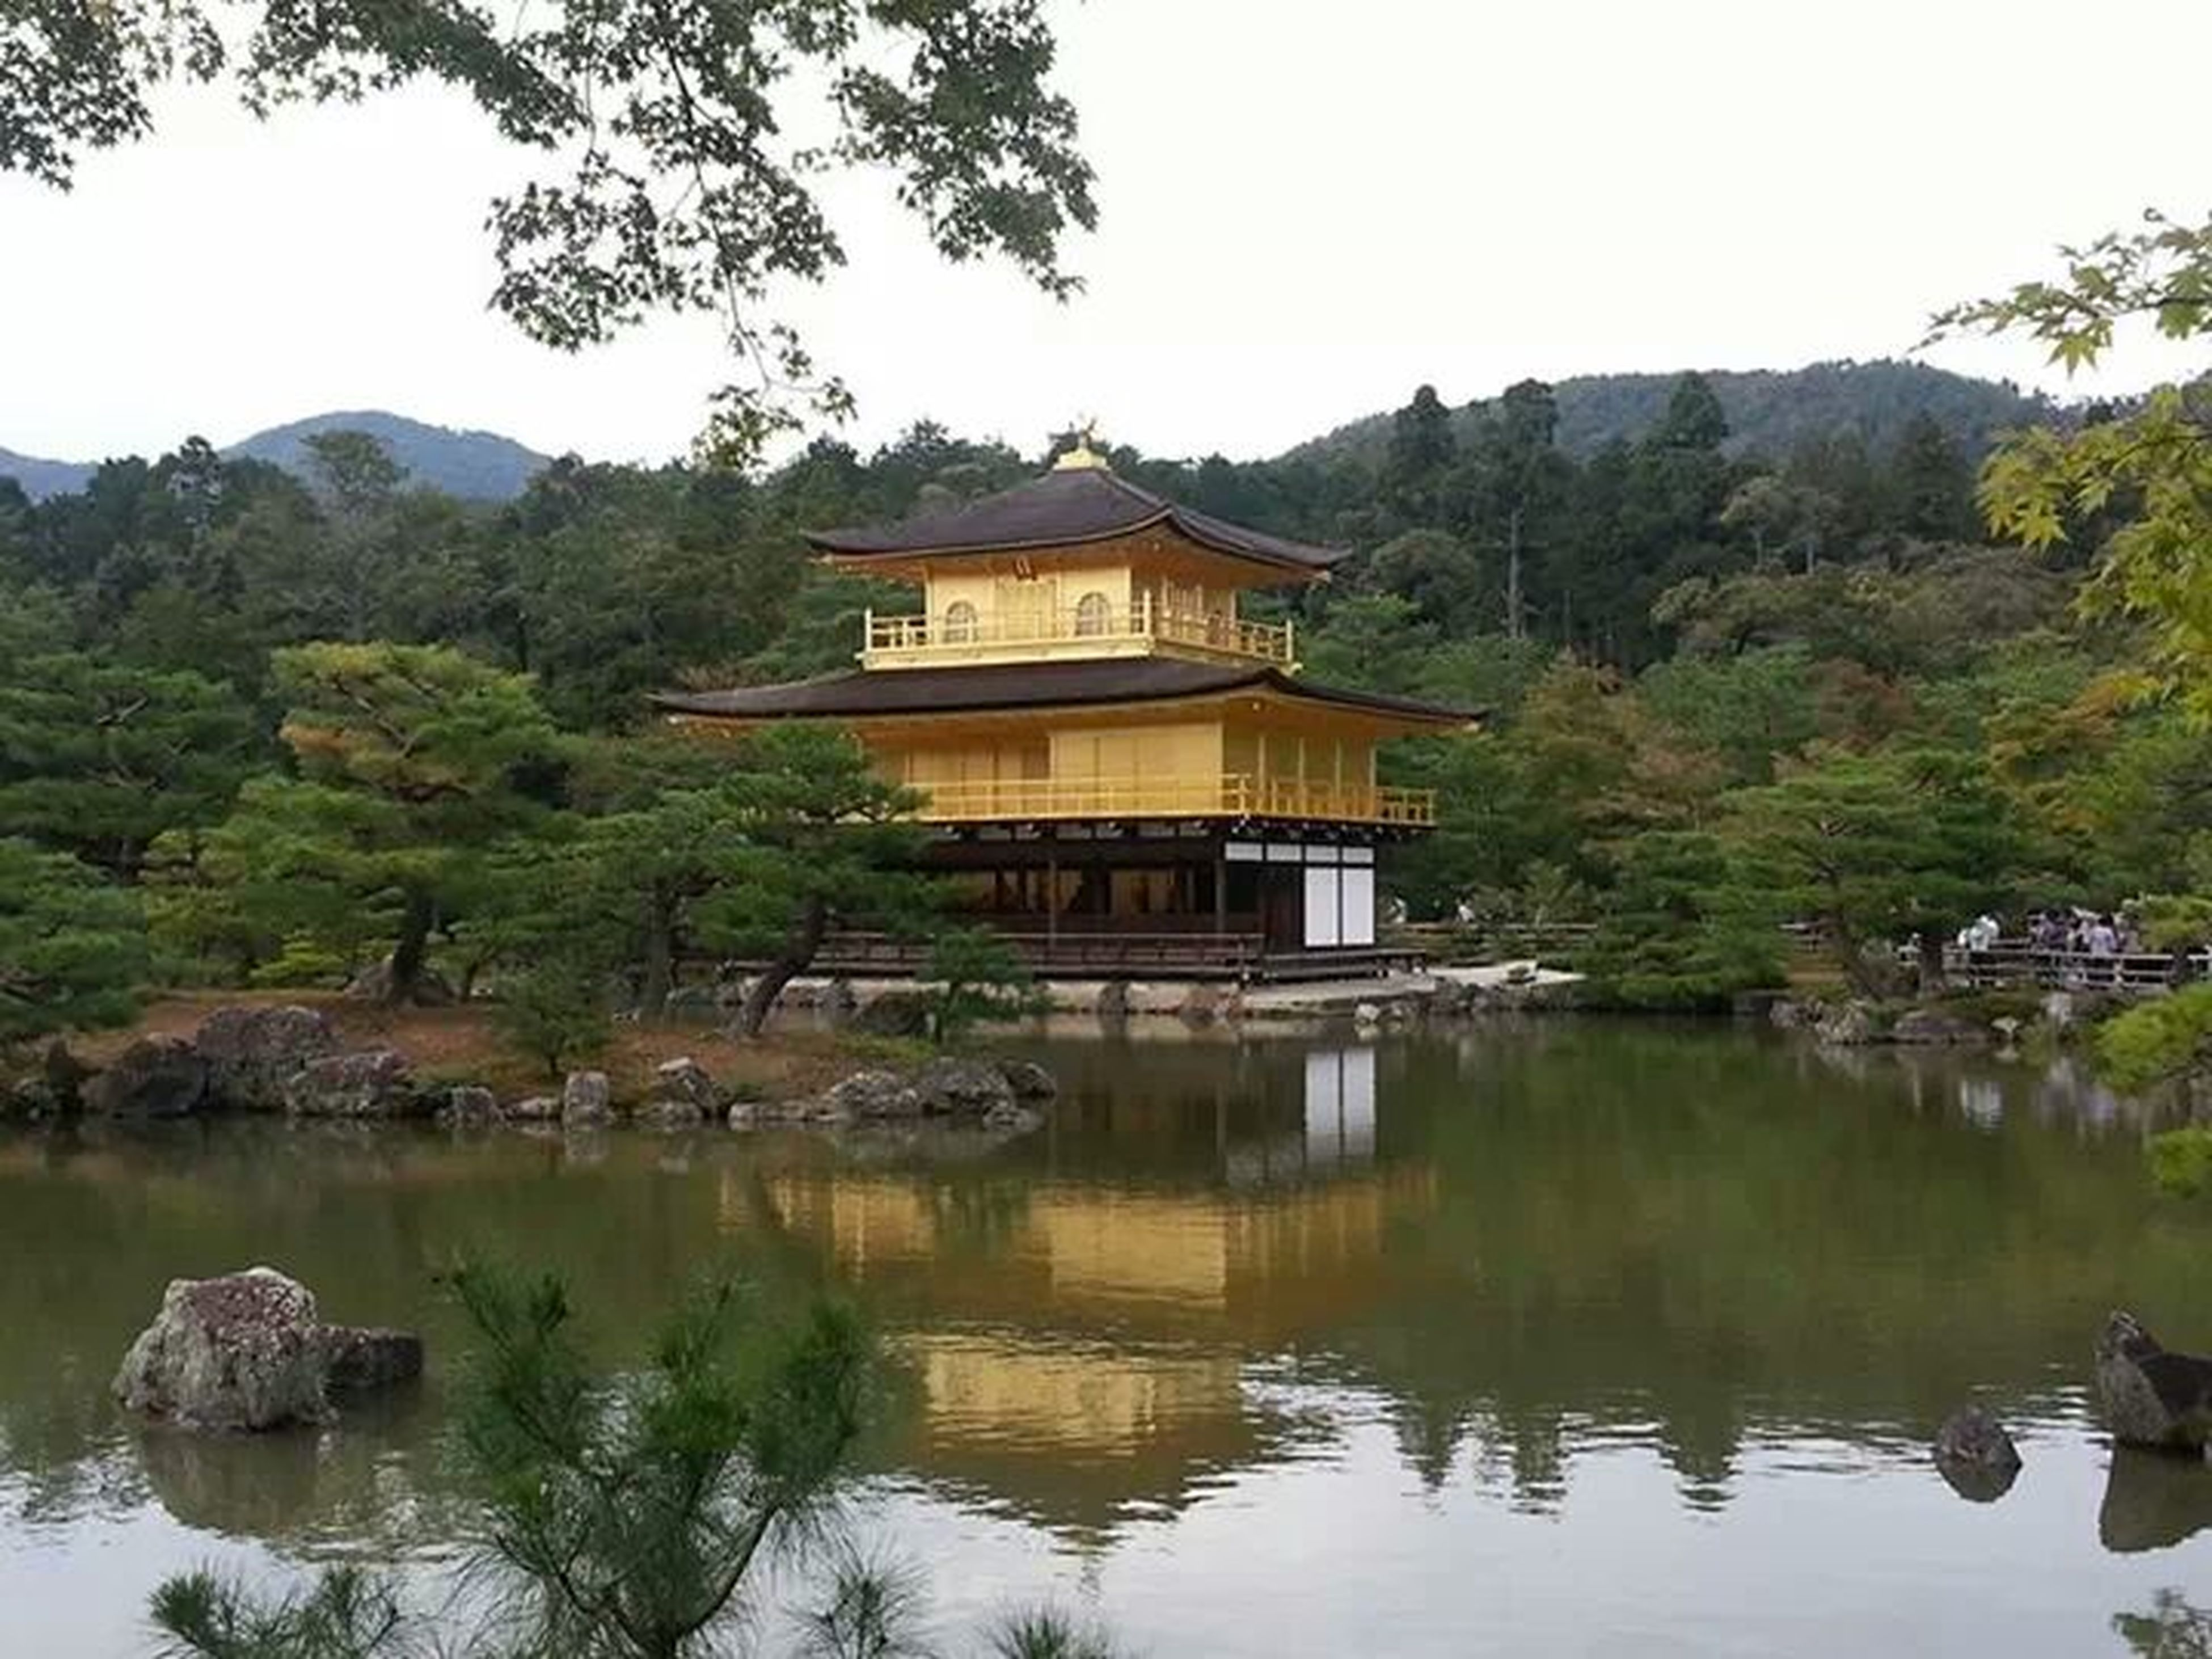 water, tree, built structure, architecture, mountain, reflection, building exterior, lake, waterfront, clear sky, house, tranquility, river, tranquil scene, nature, beauty in nature, scenics, day, mountain range, outdoors